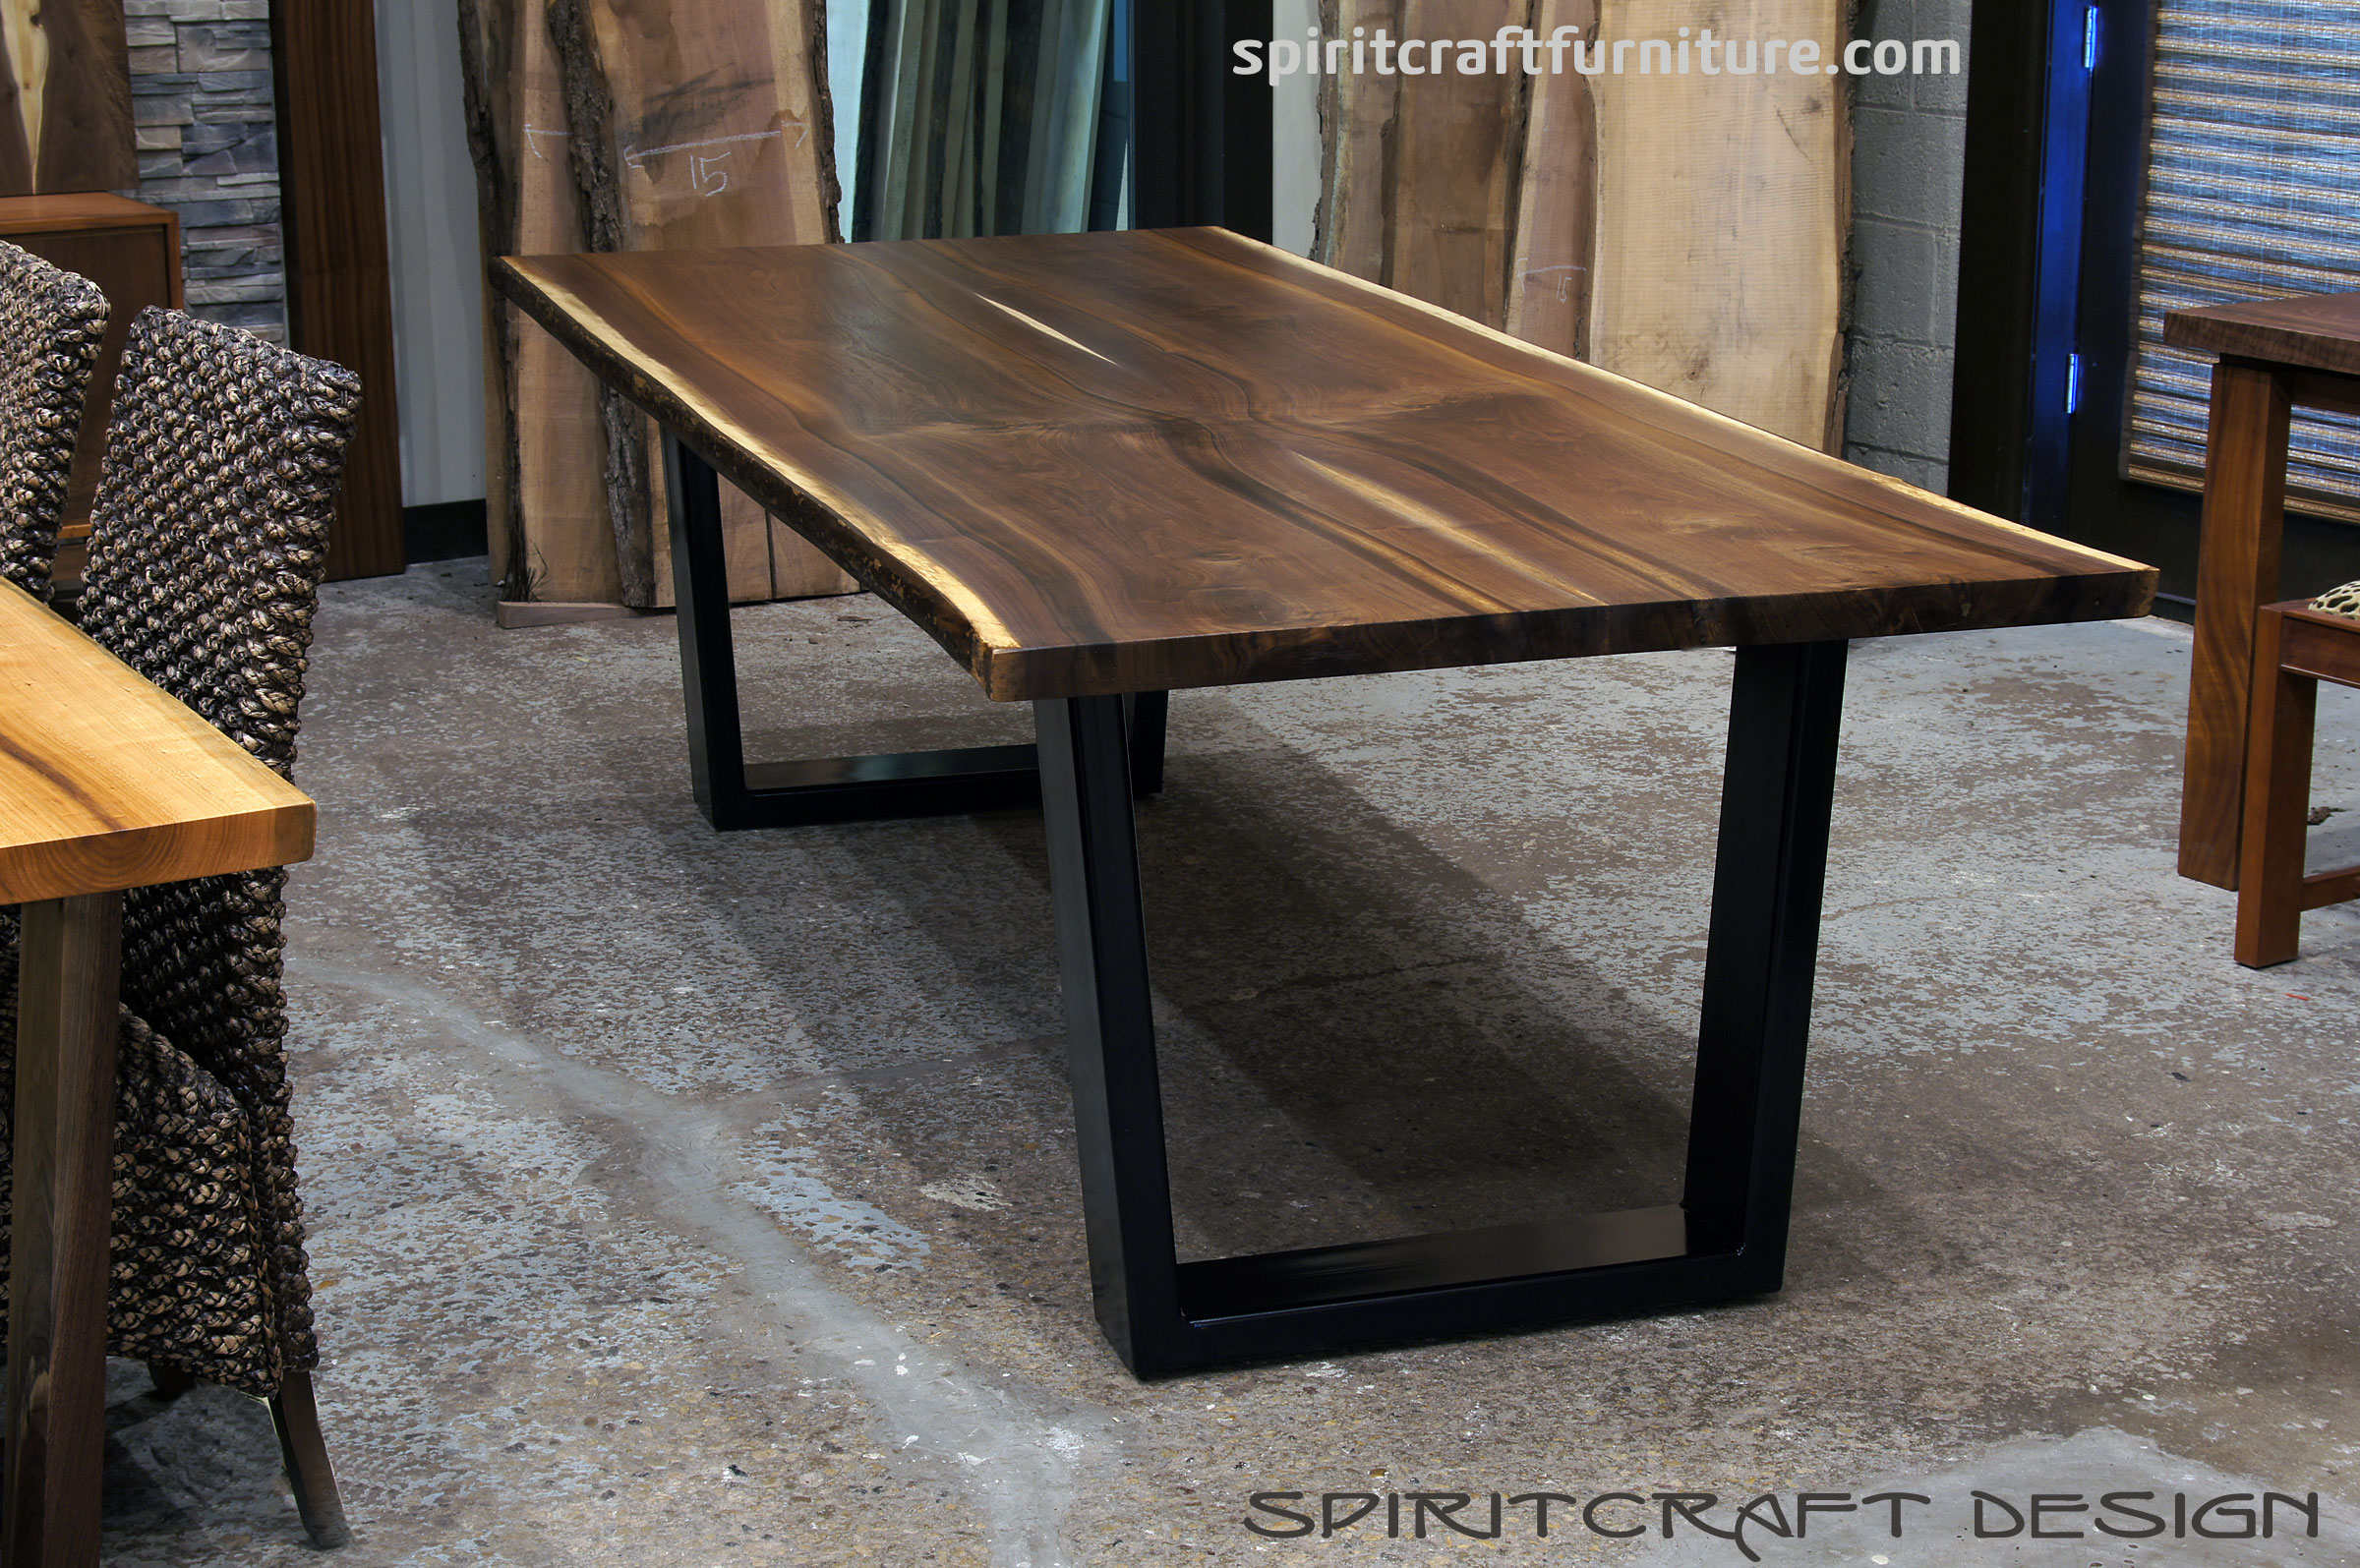 Black Walnut Live Edge Slab Dining Table For Chicago Area Client From Great  Spirit Furniture Company